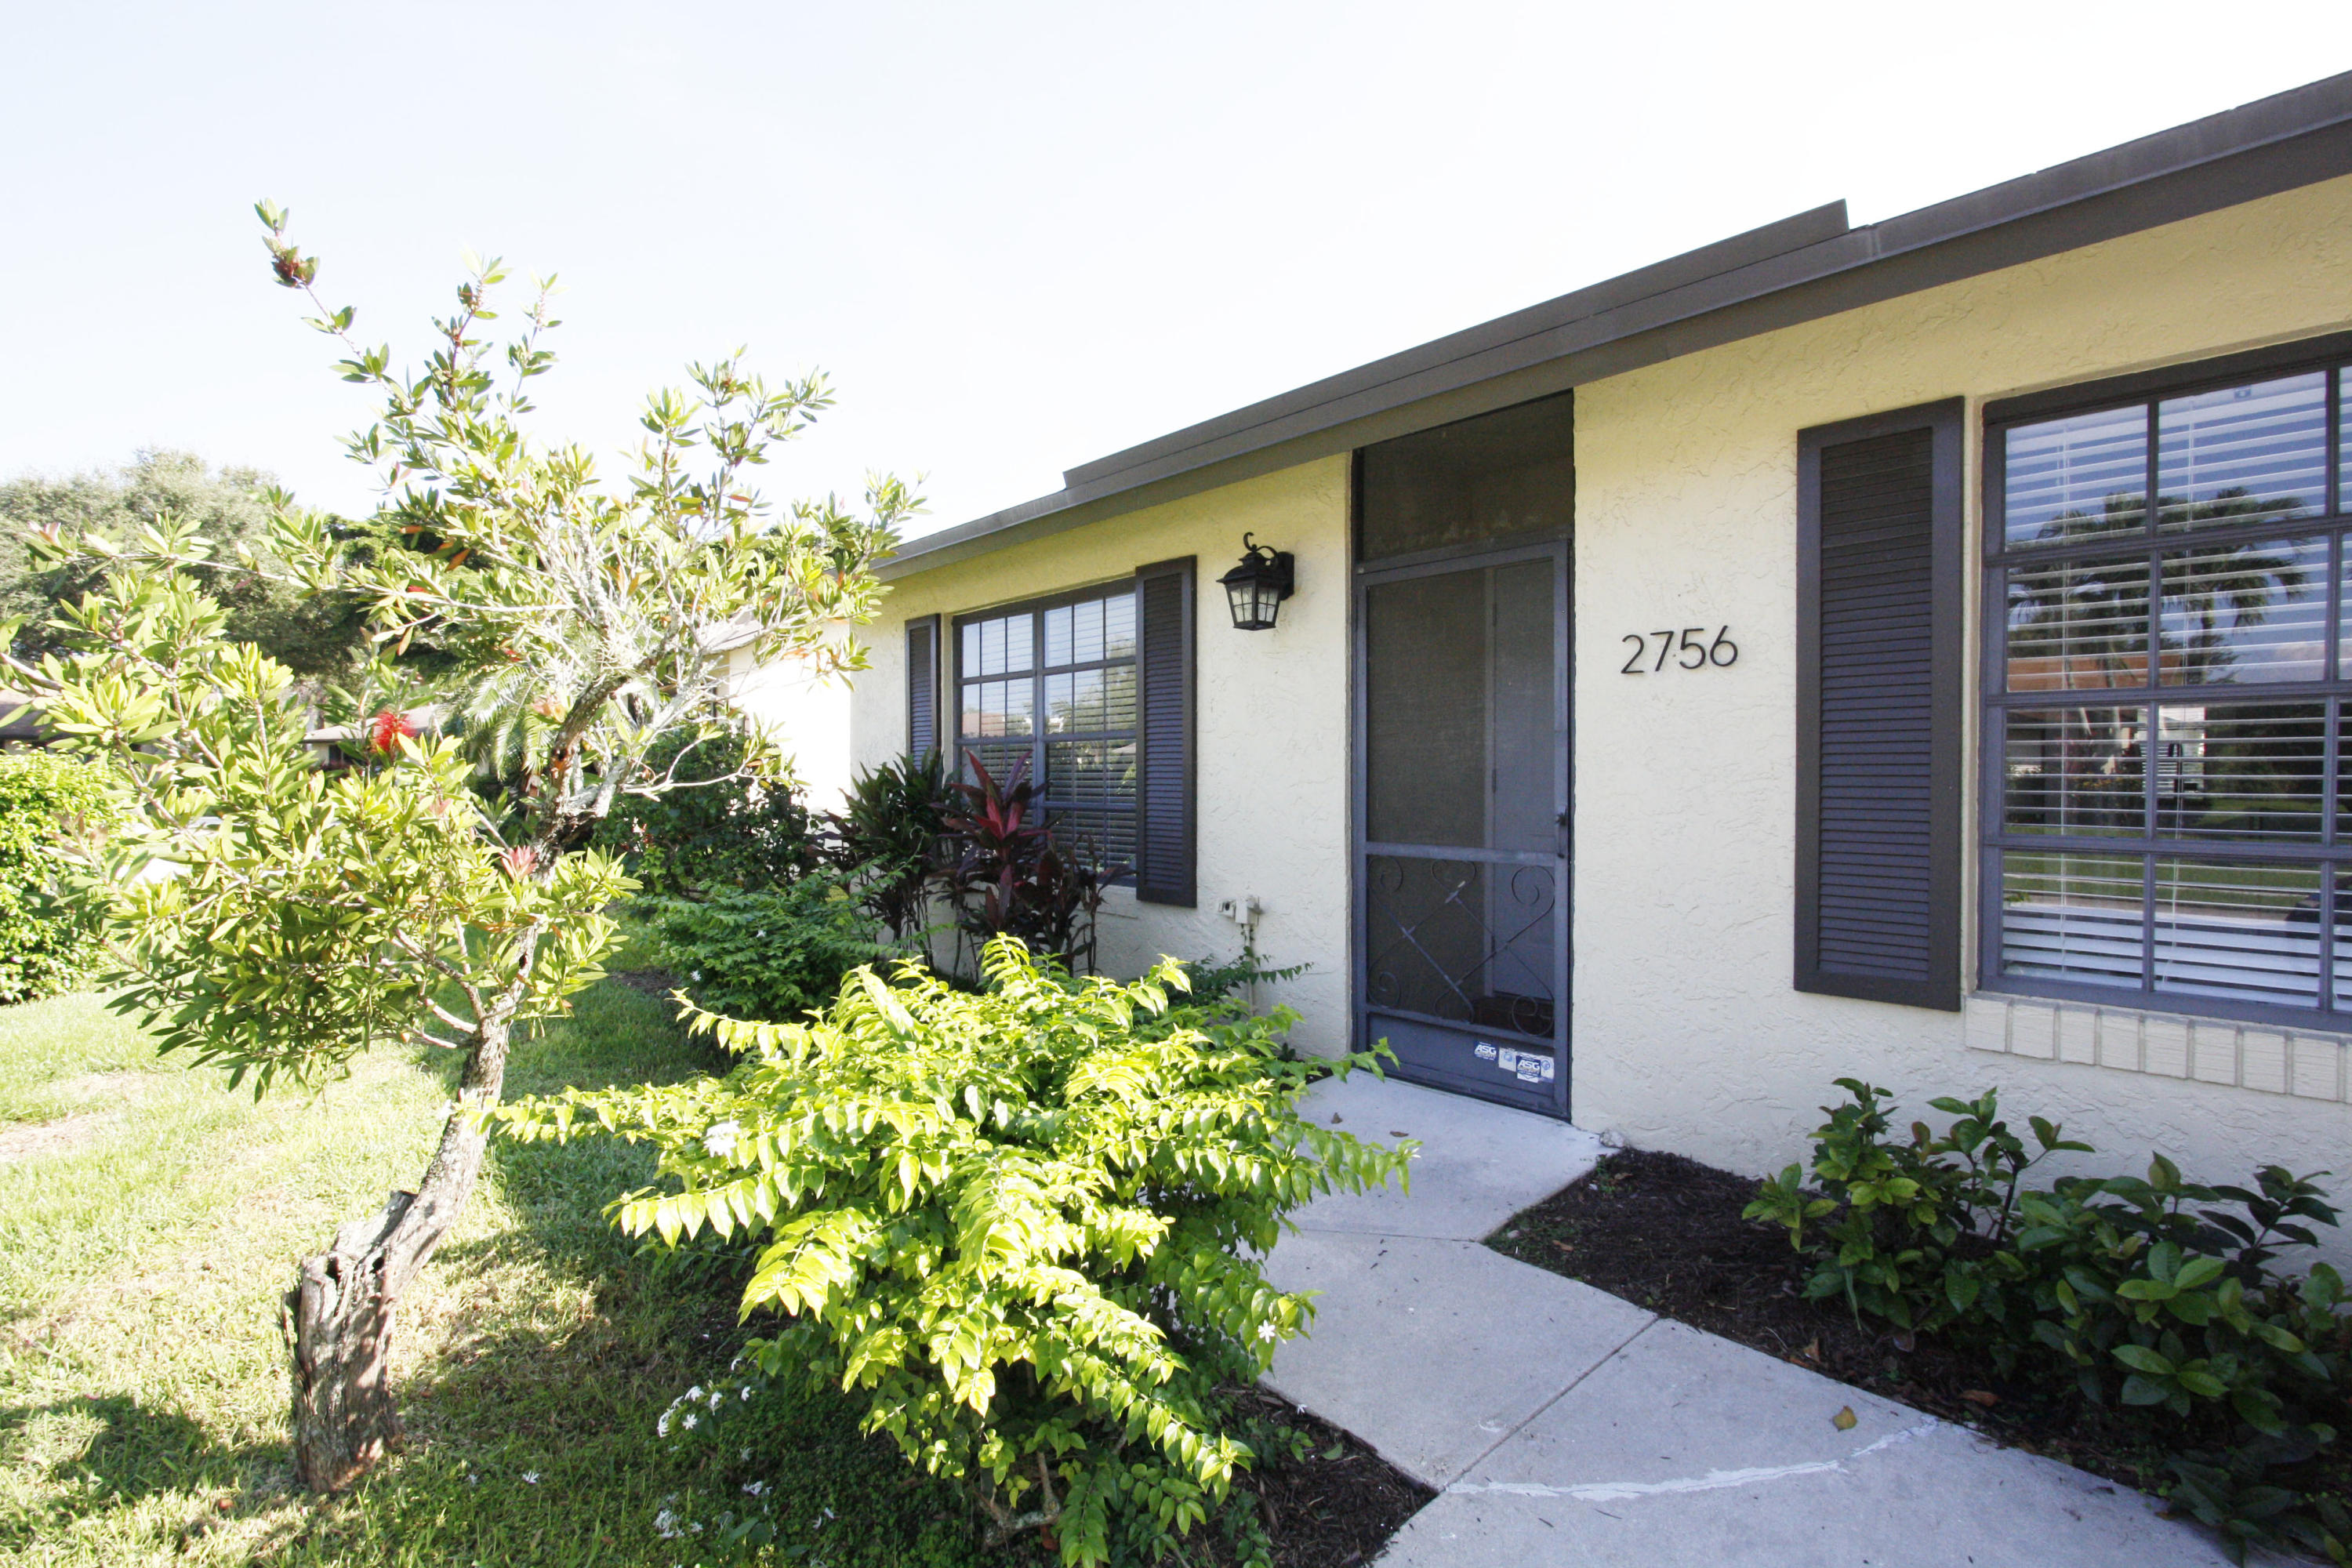 2756 Carnation Court, Delray Beach, Florida 33445, 2 Bedrooms Bedrooms, ,2 BathroomsBathrooms,Rental,For Rent,Carnation,RX-10586551